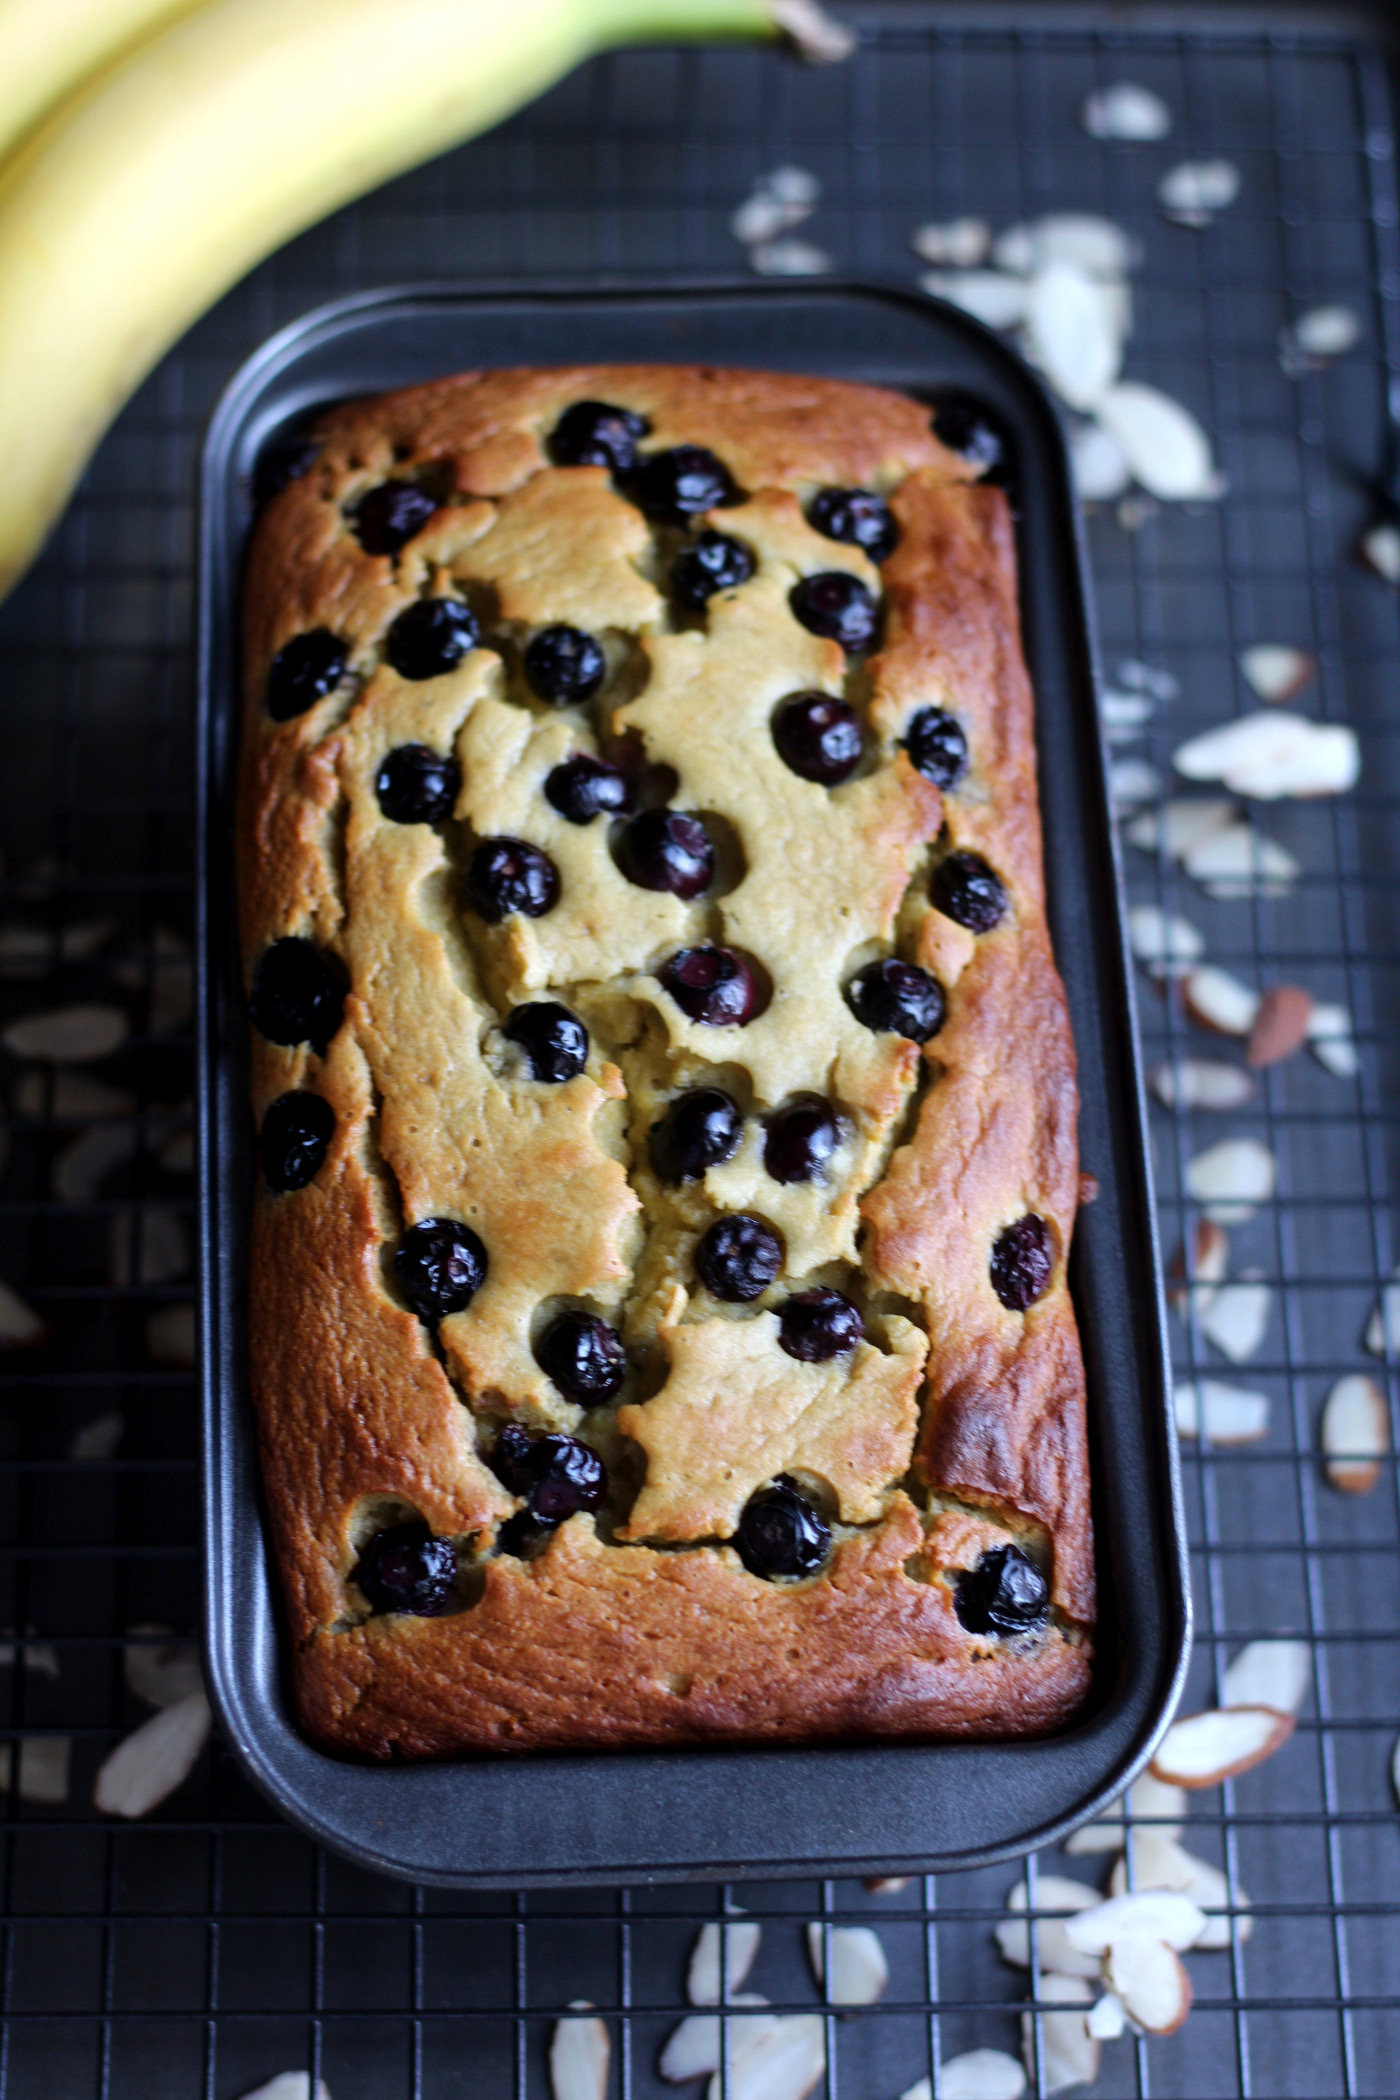 Almond Flour Blueberry Banana Bread